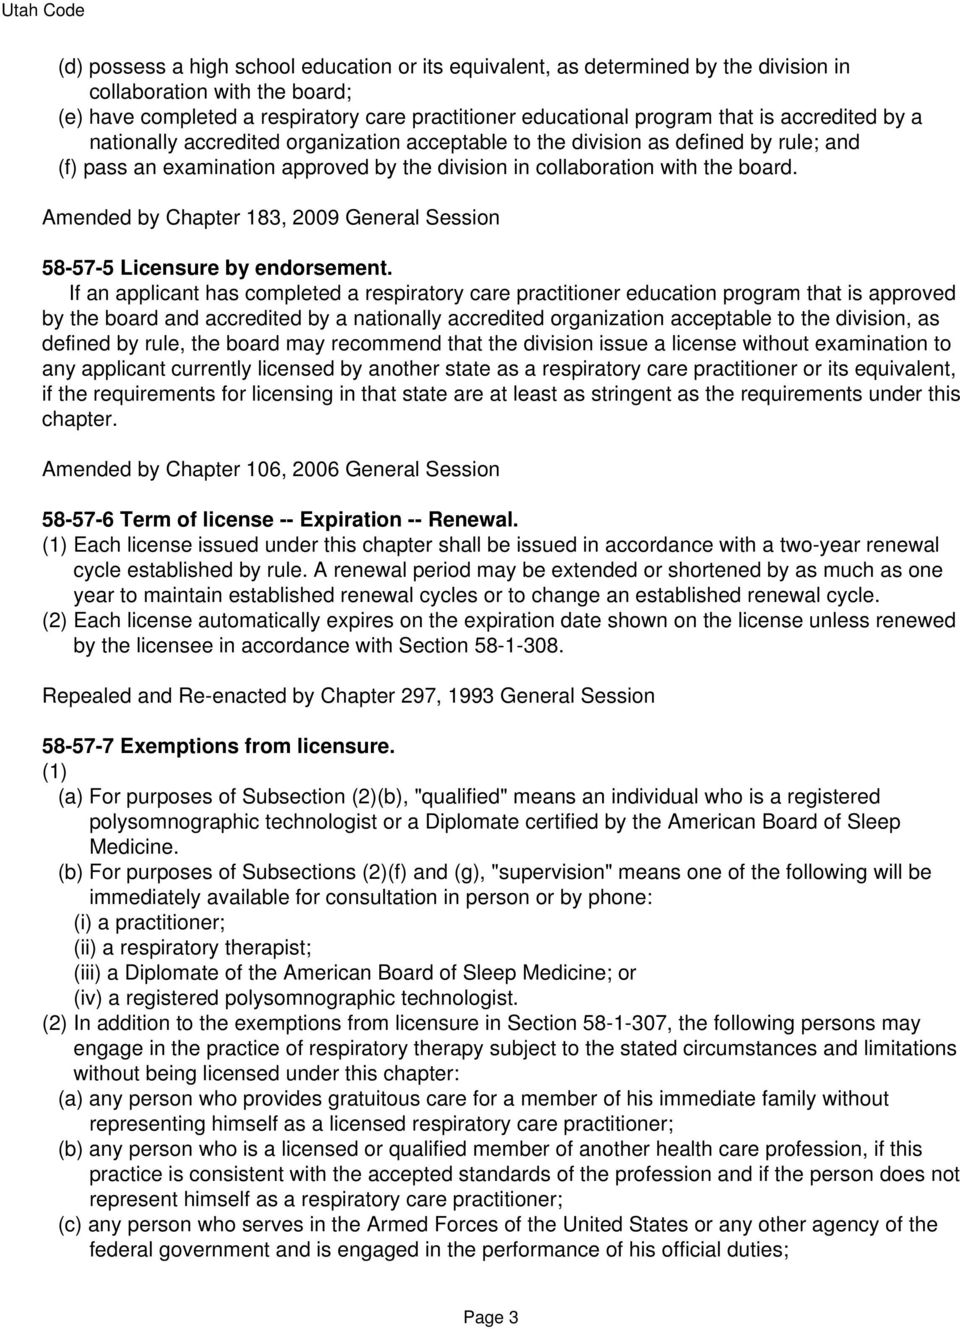 Amended by Chapter 183, 2009 General Session 58-57-5 Licensure by endorsement.